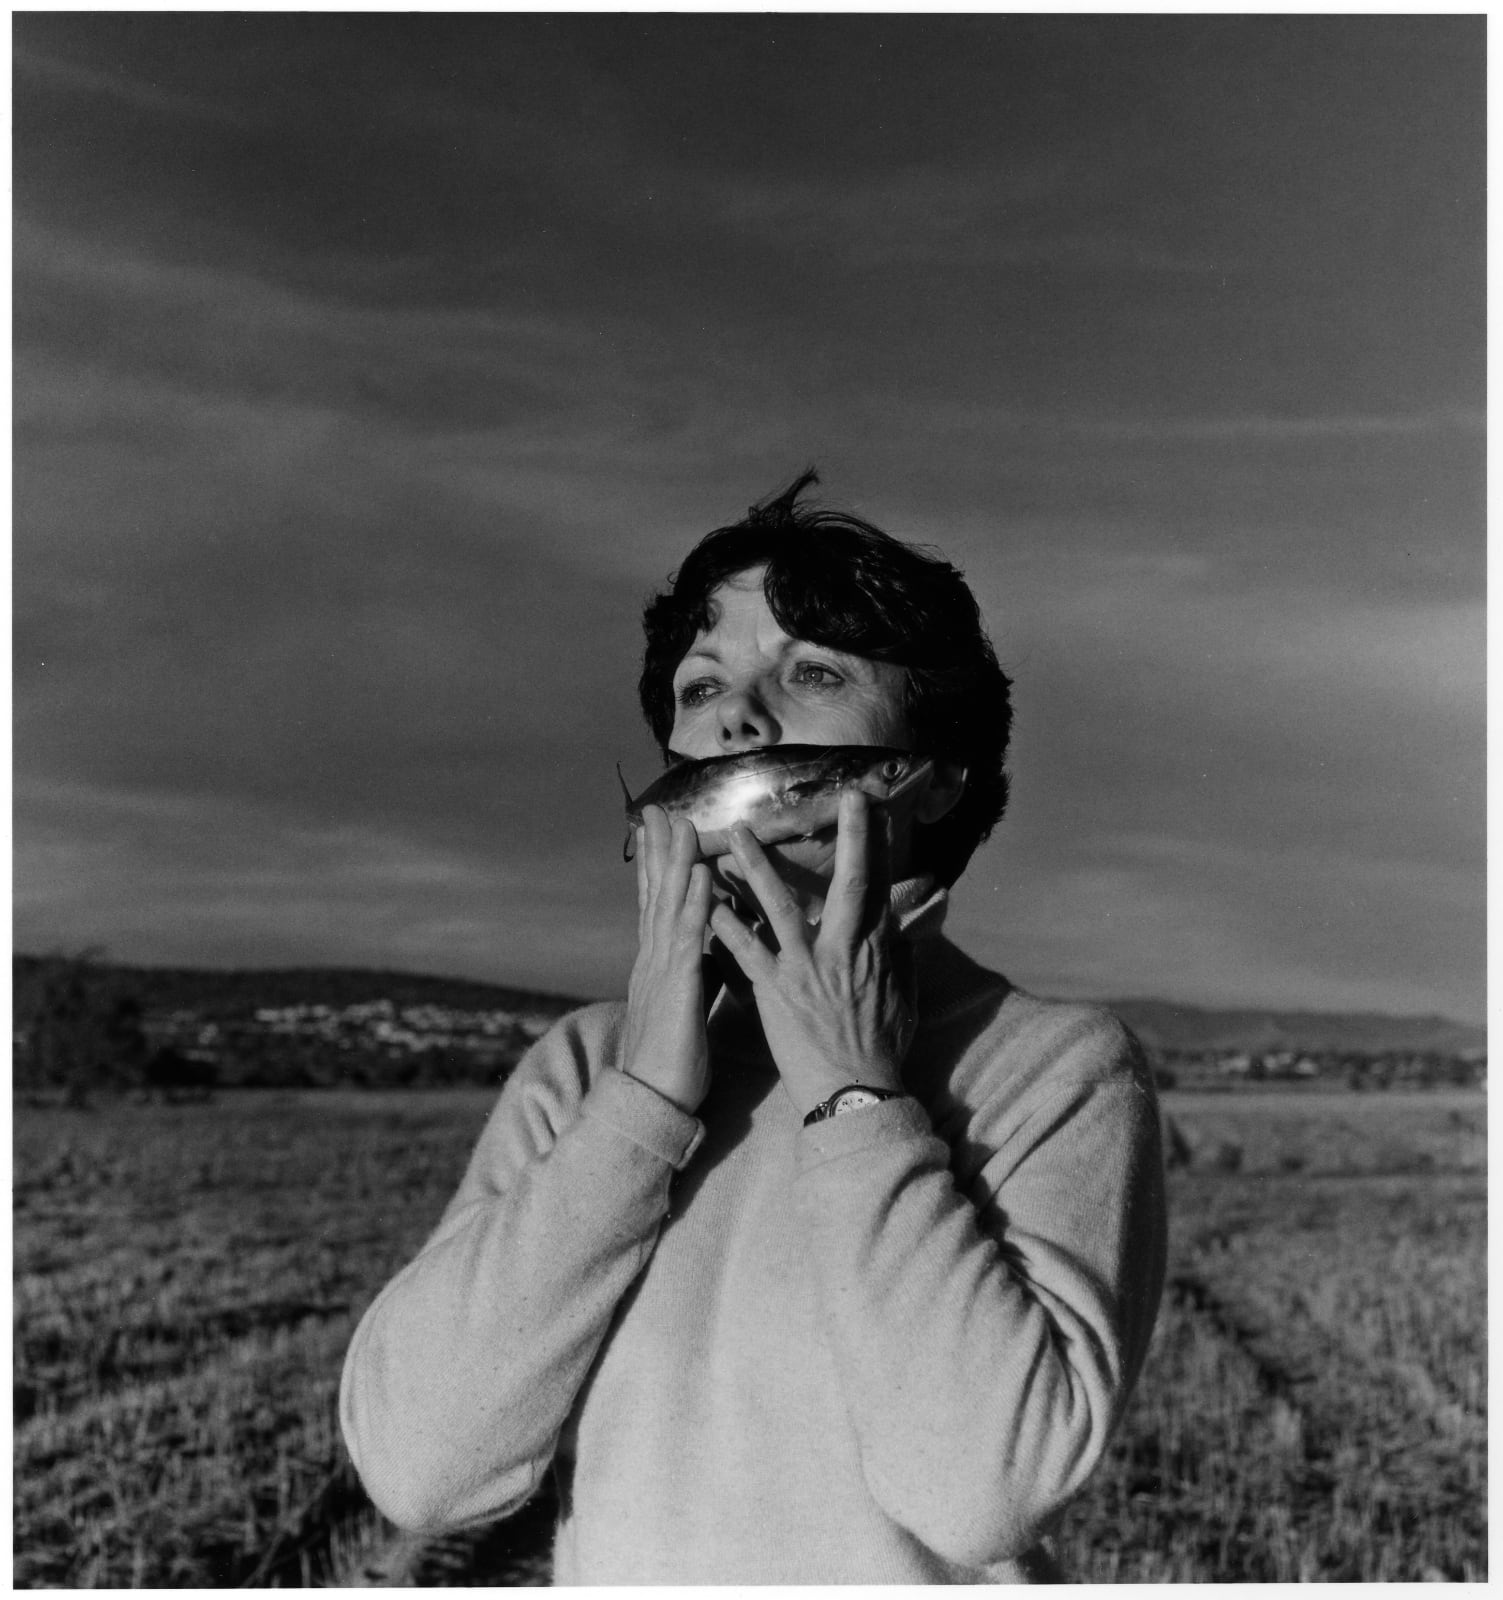 © Graciela Iturbide, Mexico, 2021 Sony World Photography Awards - Self Portrait In The Country, 1996